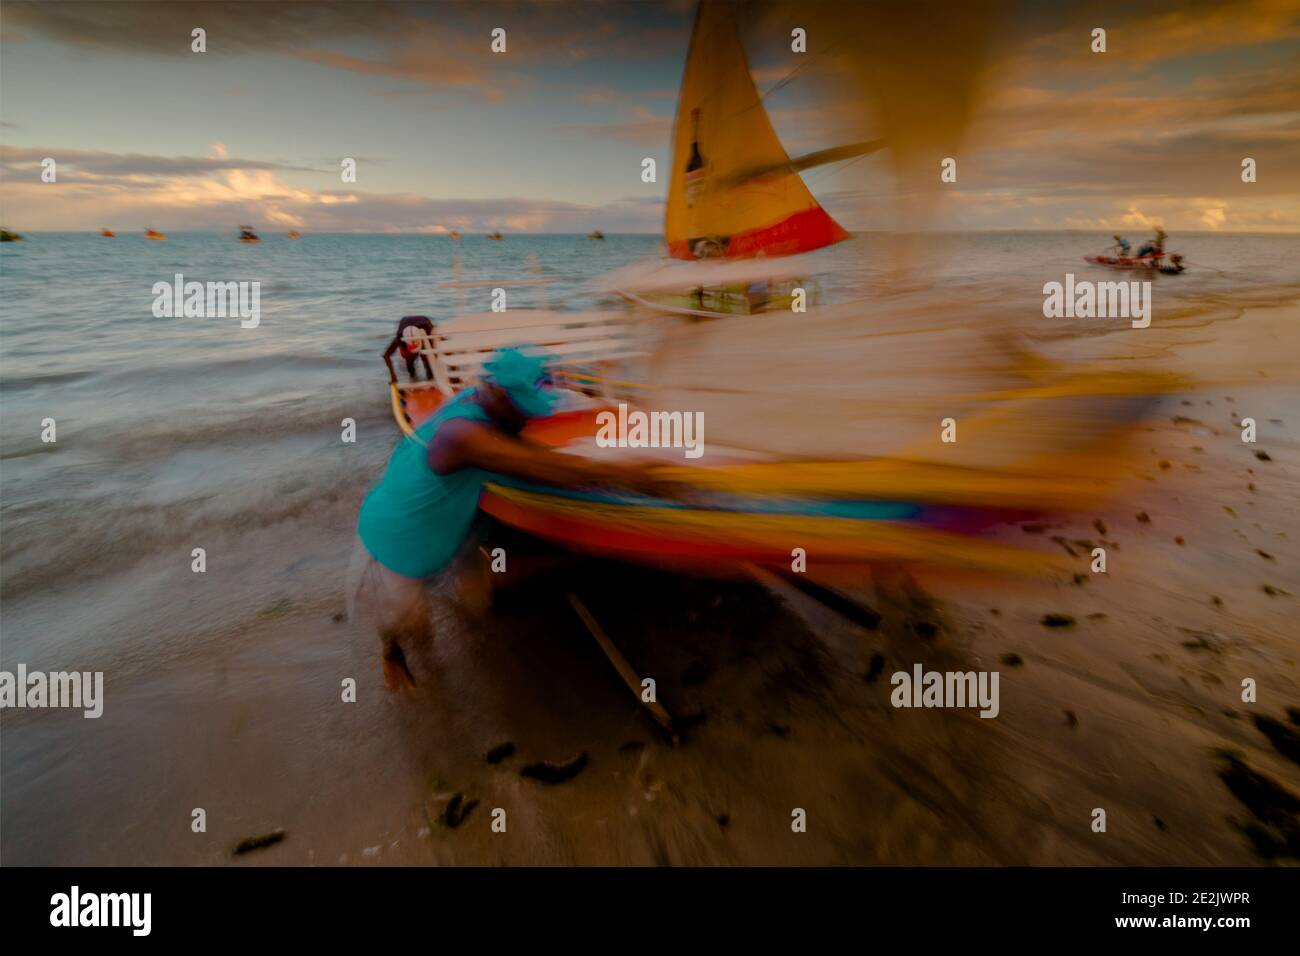 Daily movement on a beach in Maceió Brazil Stock Photo